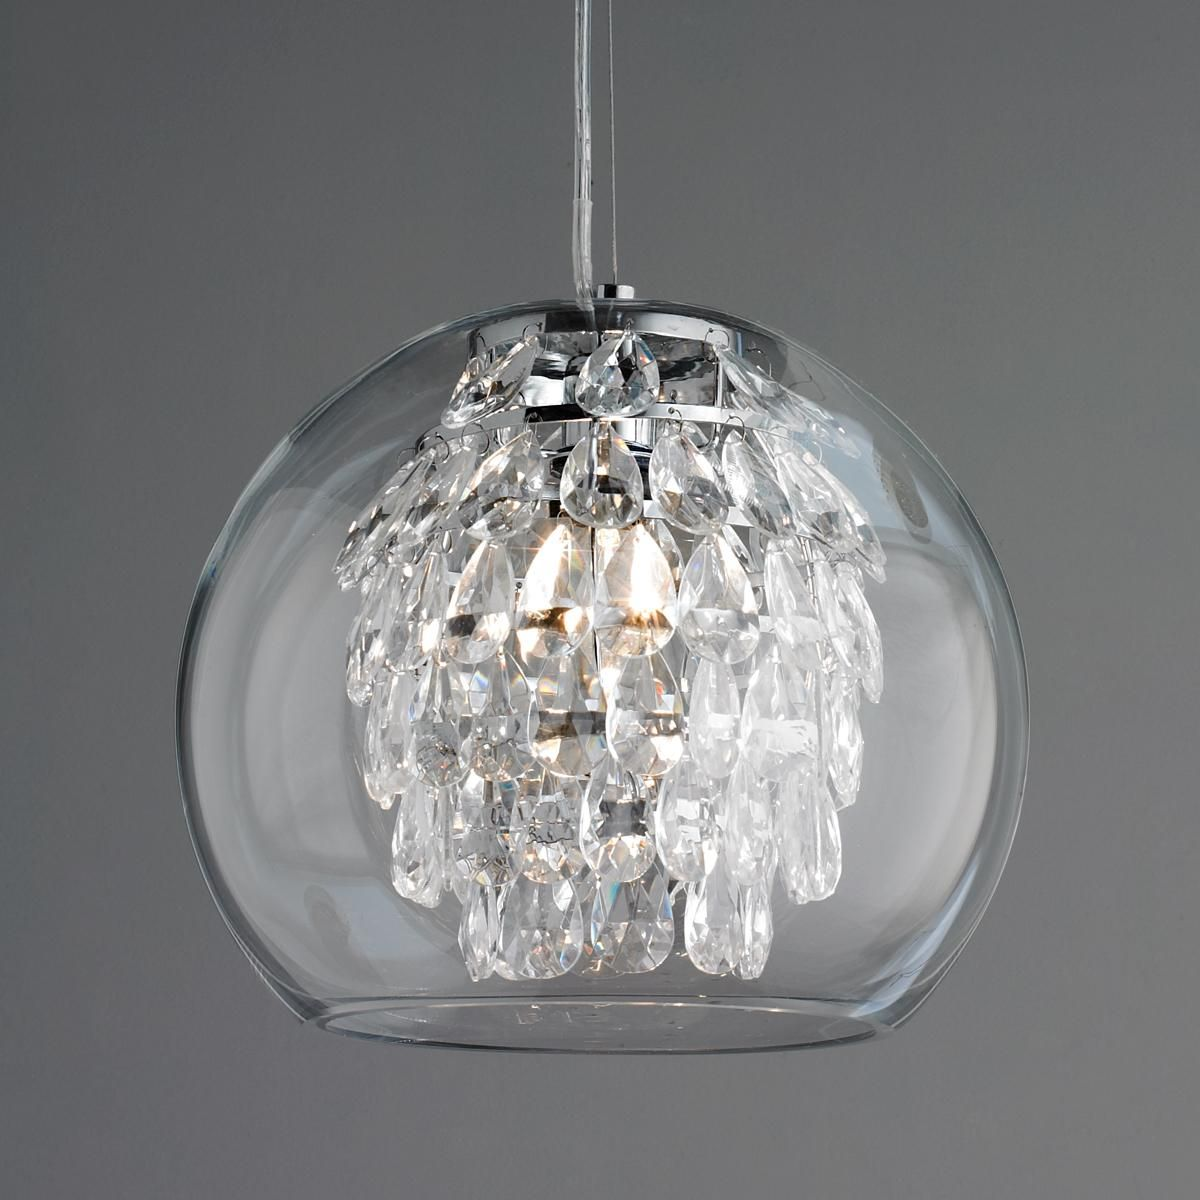 Chandelier Lighting Glass: Glass Globe And Crystal Pendant Light